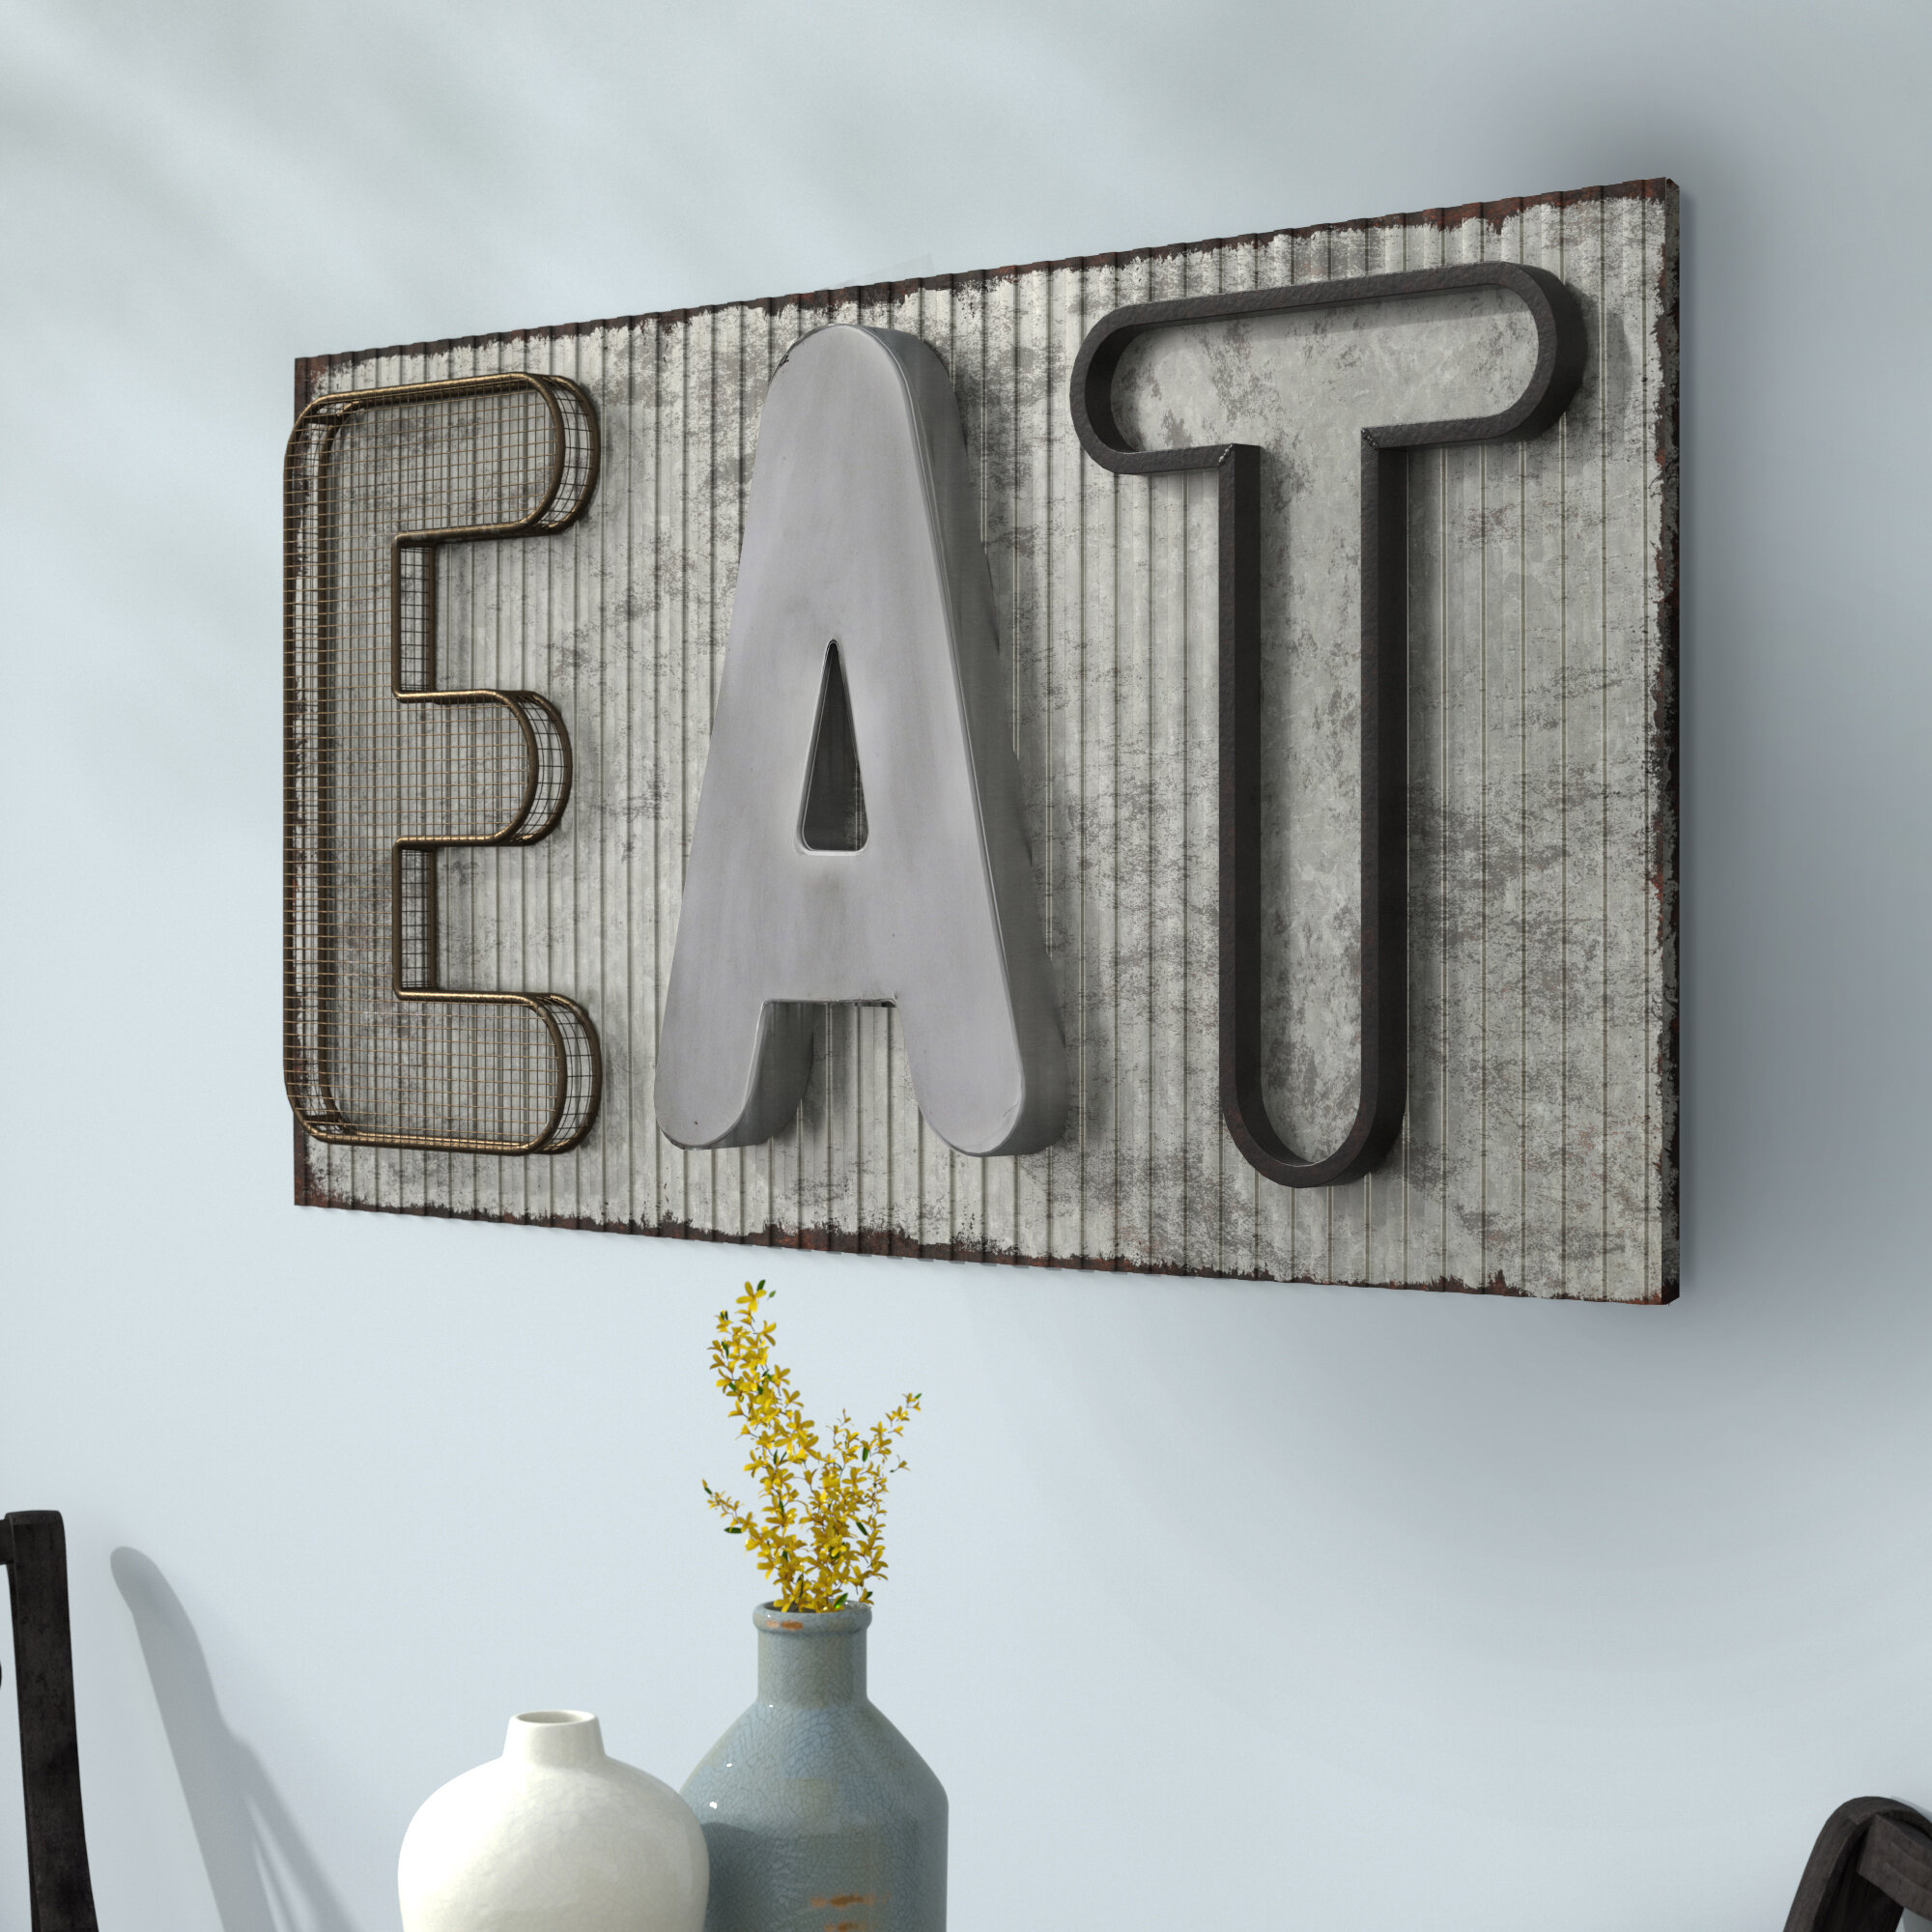 Vertical Eat Sign | Wayfair Pertaining To Casual Country Eat Here Retro Wall Decor (View 10 of 30)